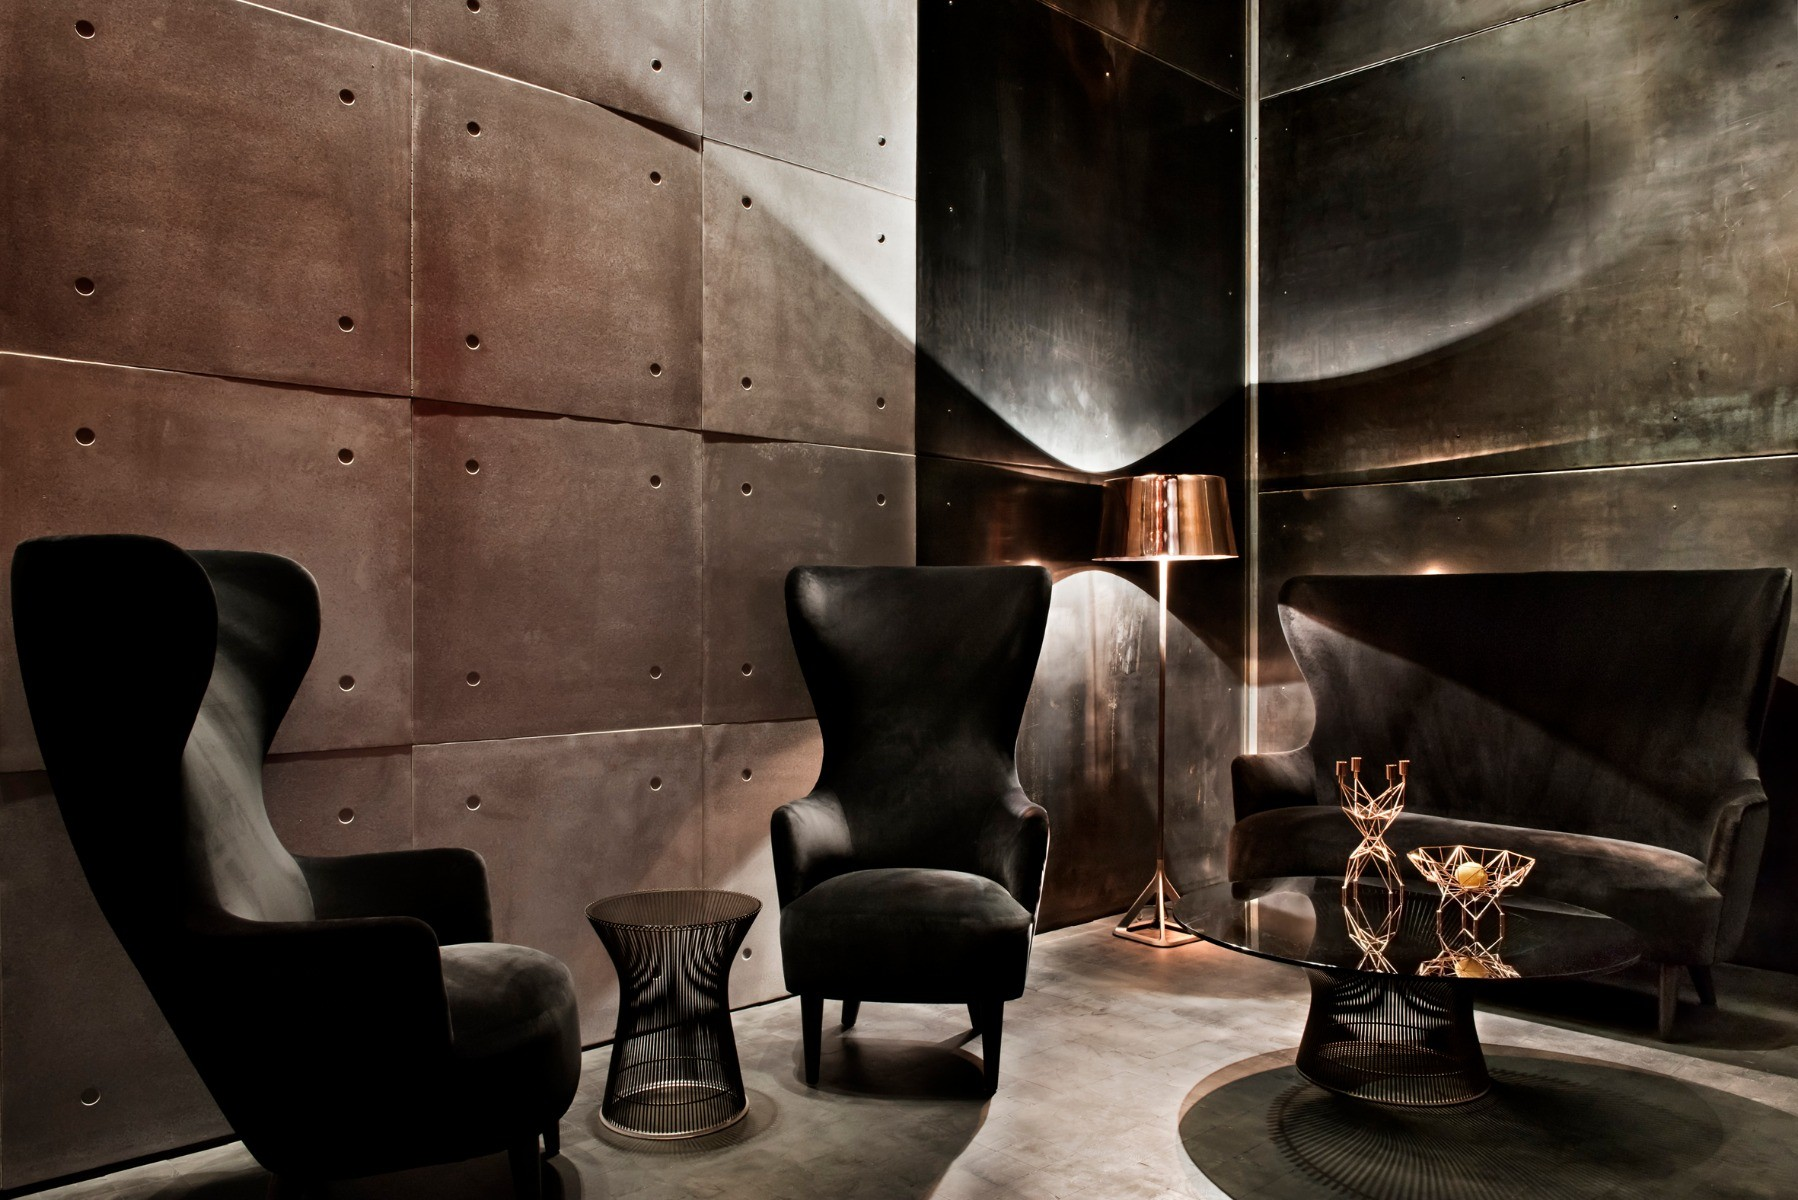 Tom Dixon Himitsu Bar in Atlanta featuring black velvet Wingback chairs and sofa, as well as a copper Base floor light and Pylon accessories.